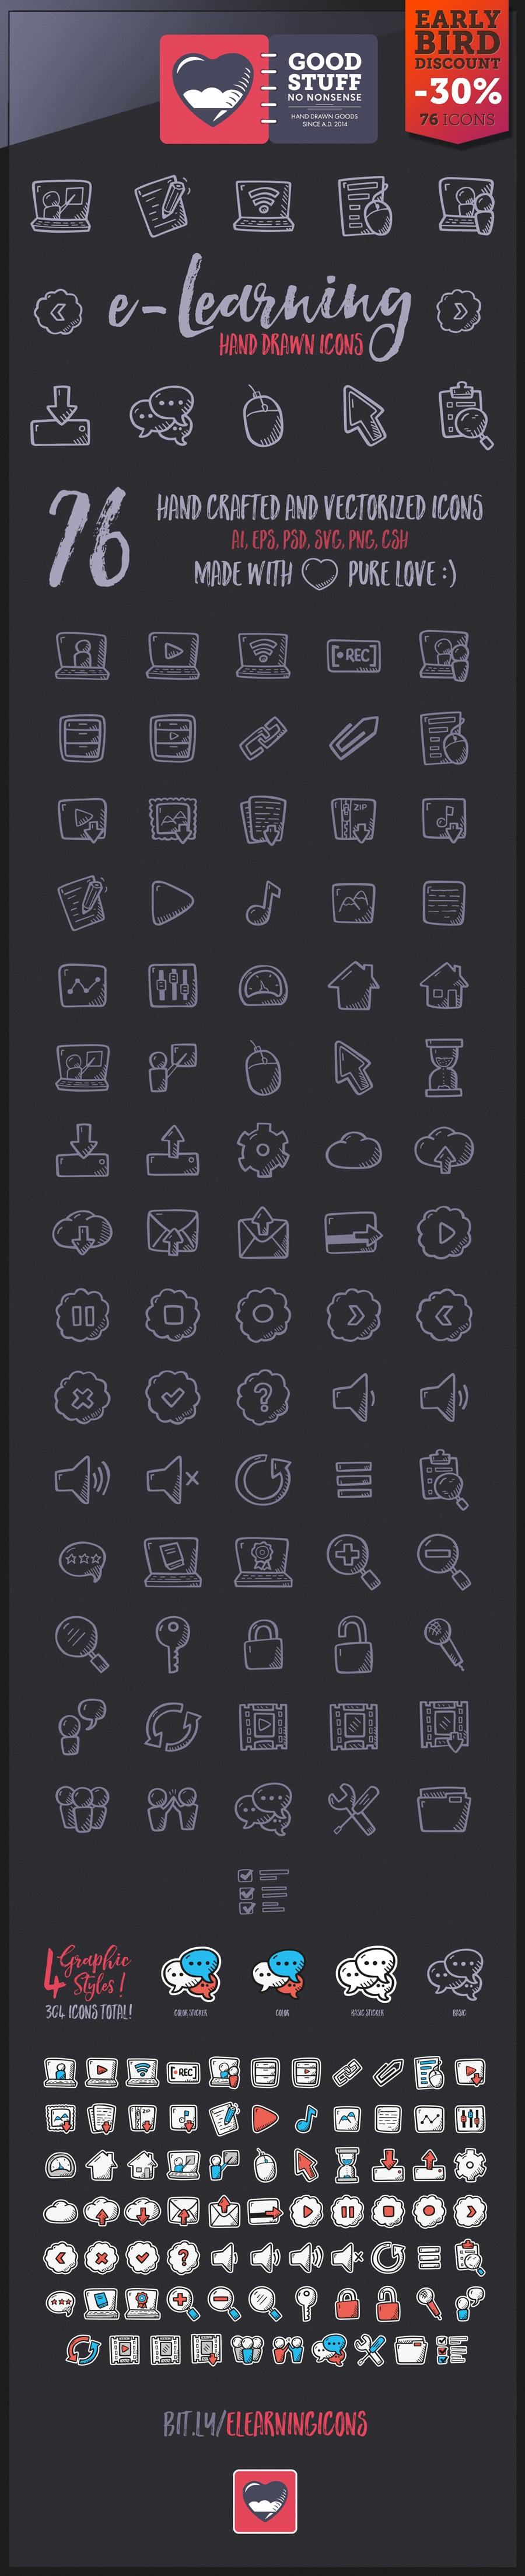 E-learning Icons - Hand Drawn Icons